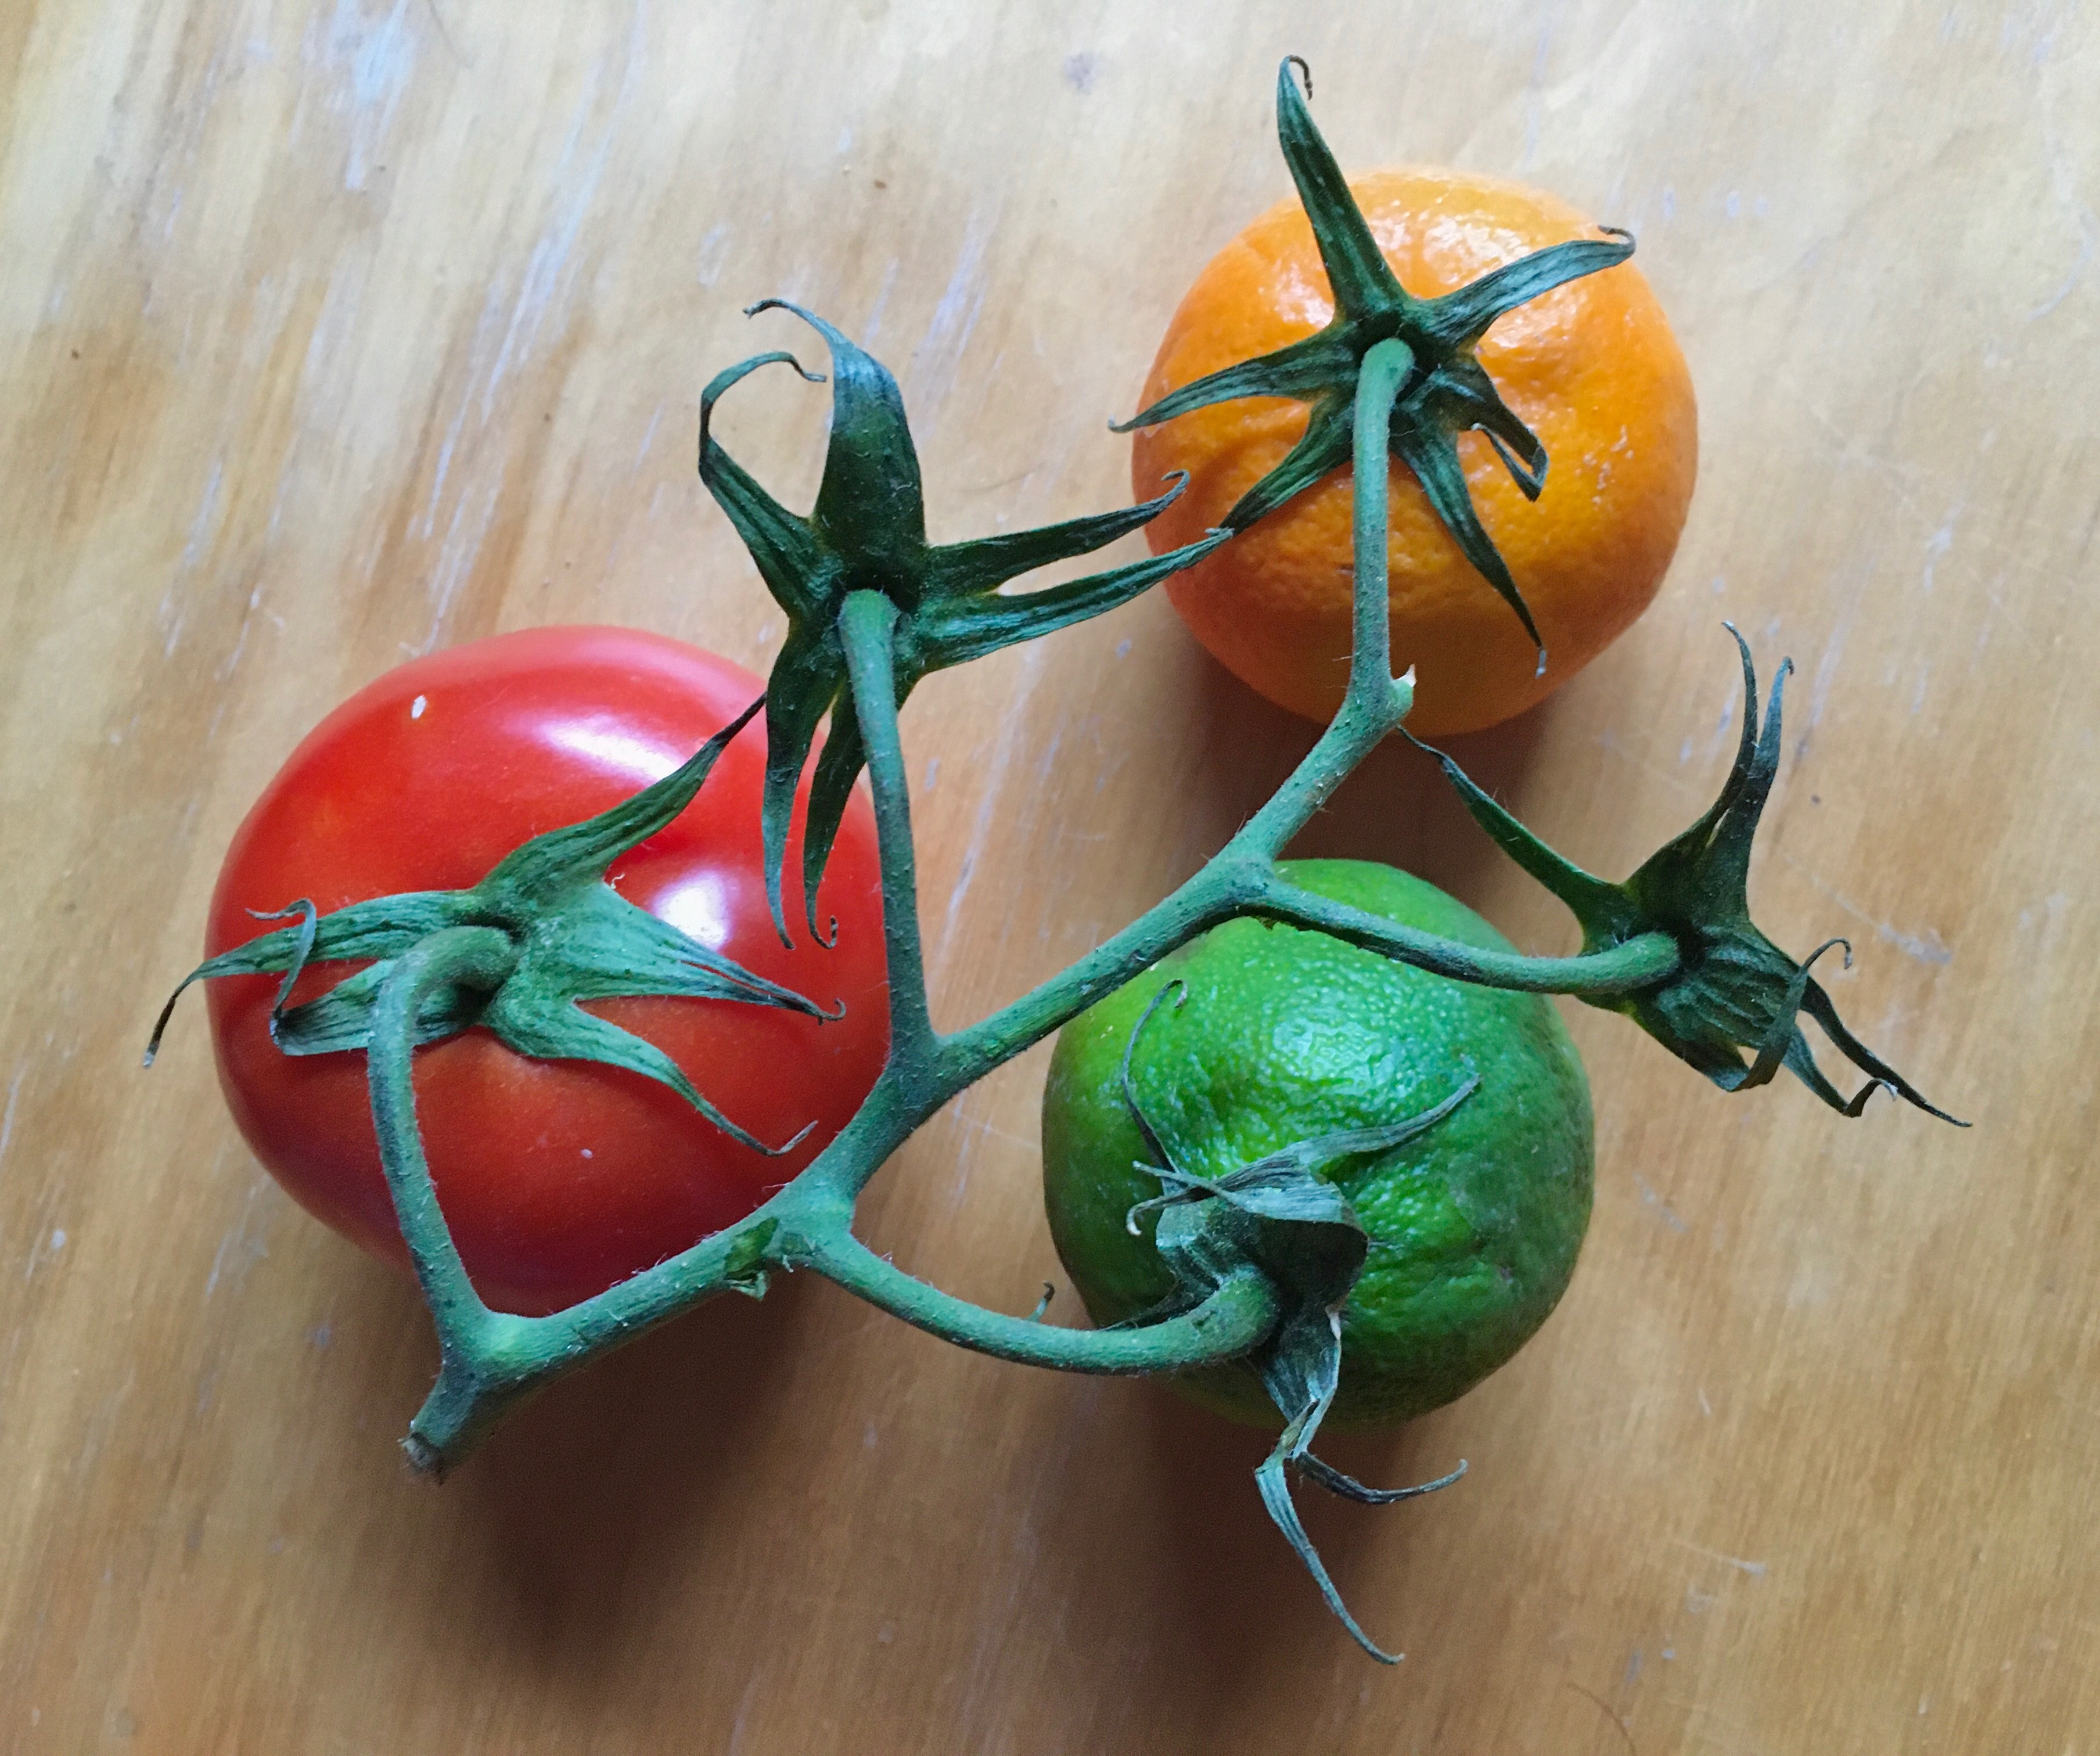 14_sg_tomatoes